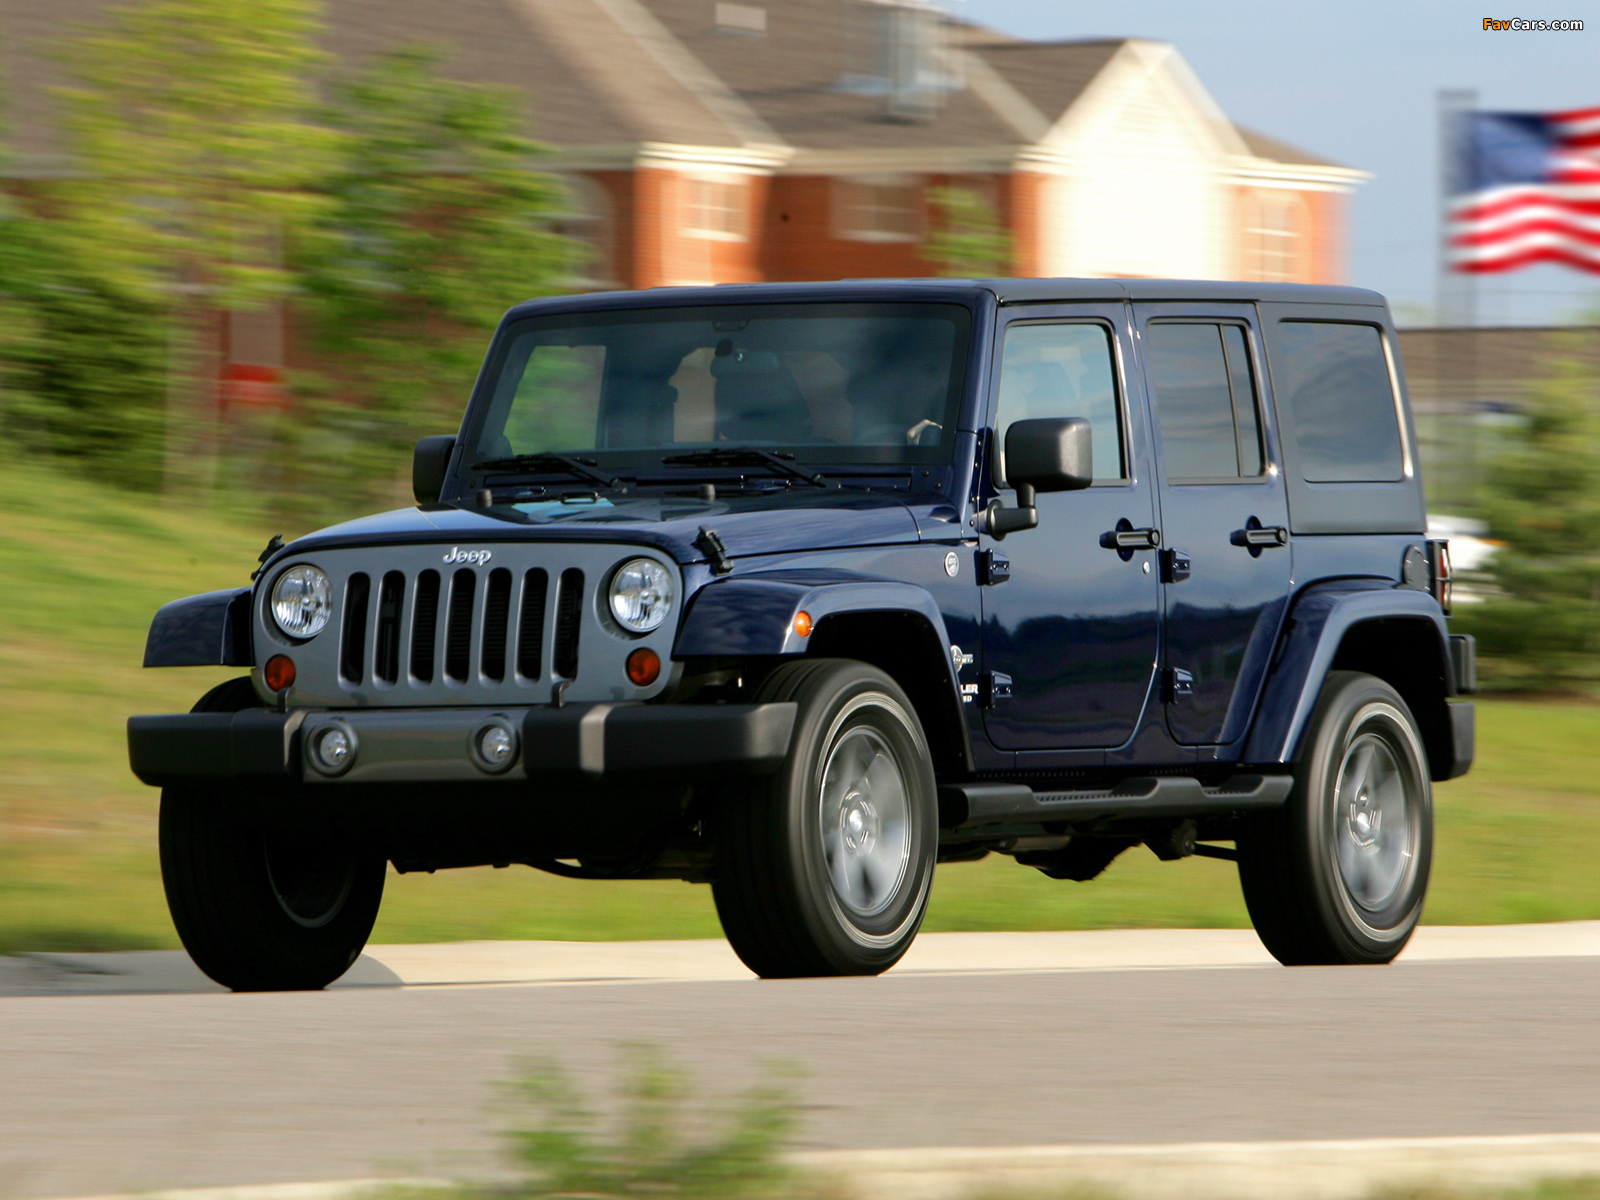 Jeep Wrangler Unlimited Freedom (JK) 2012 wallpapers (1600 x 1200)